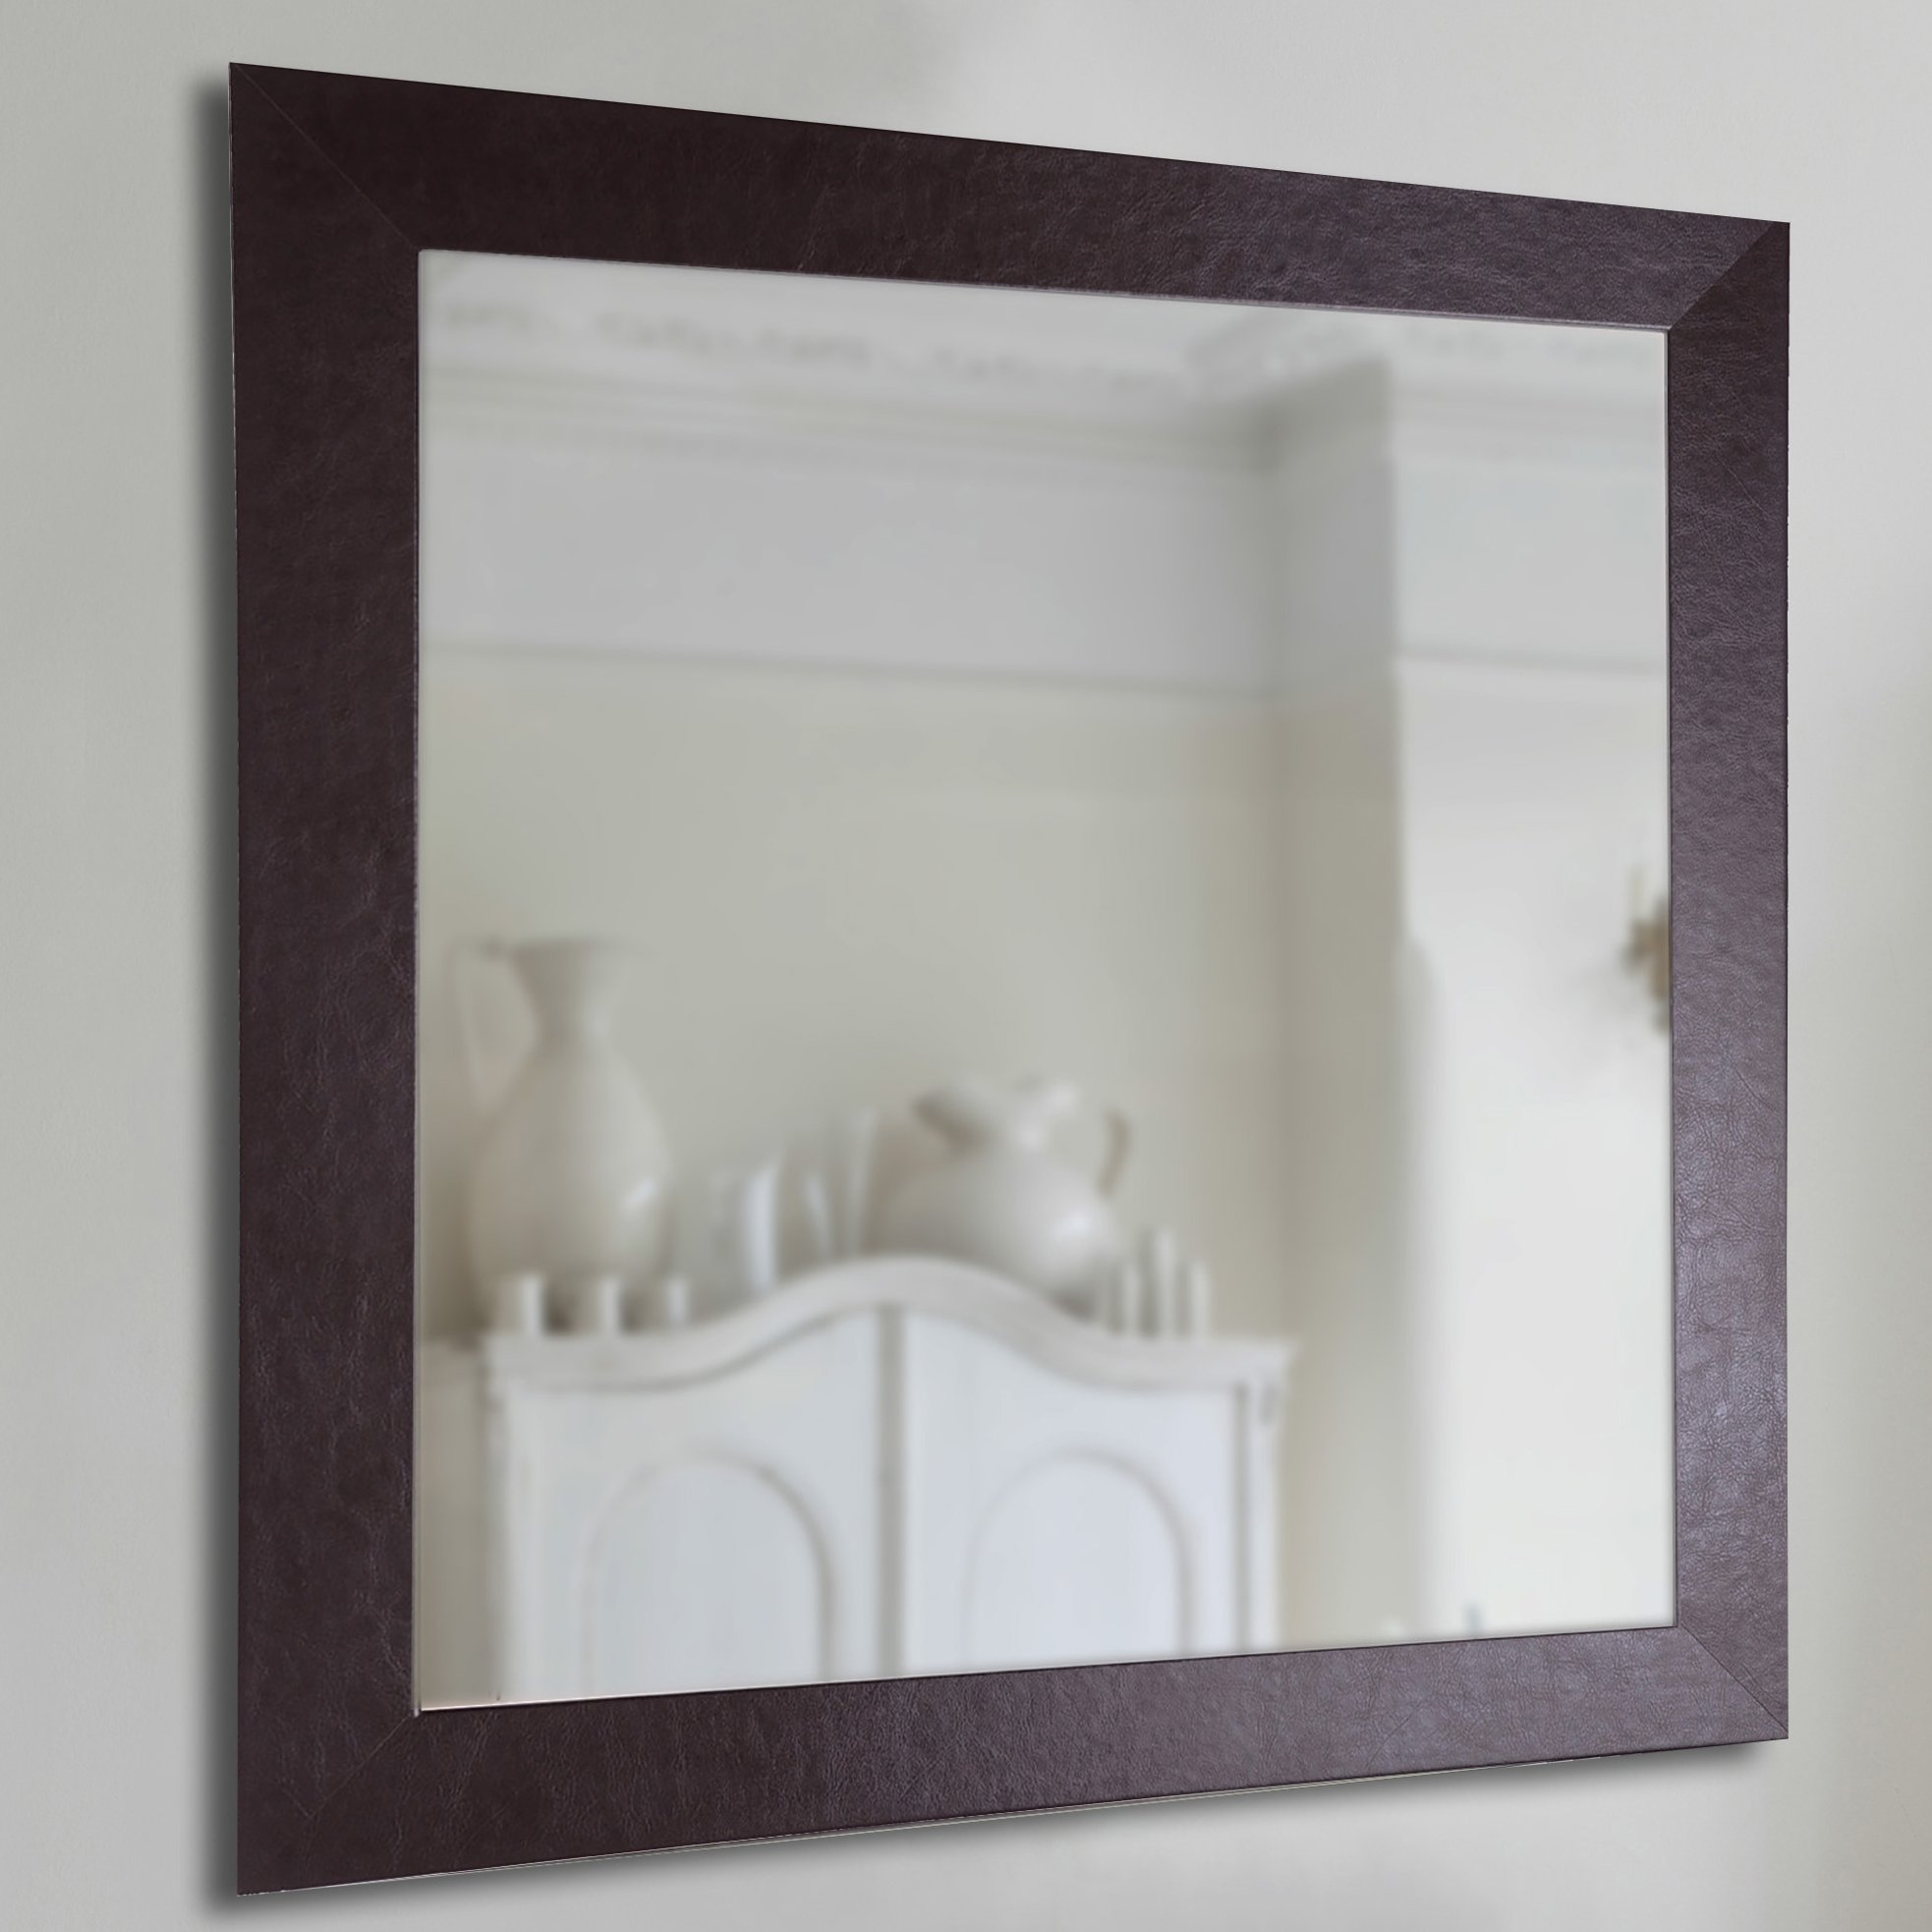 Rectangle Leather Wall Mirror Reviews Birch Lane With Regard To Leather Wall Mirrors (Image 13 of 15)